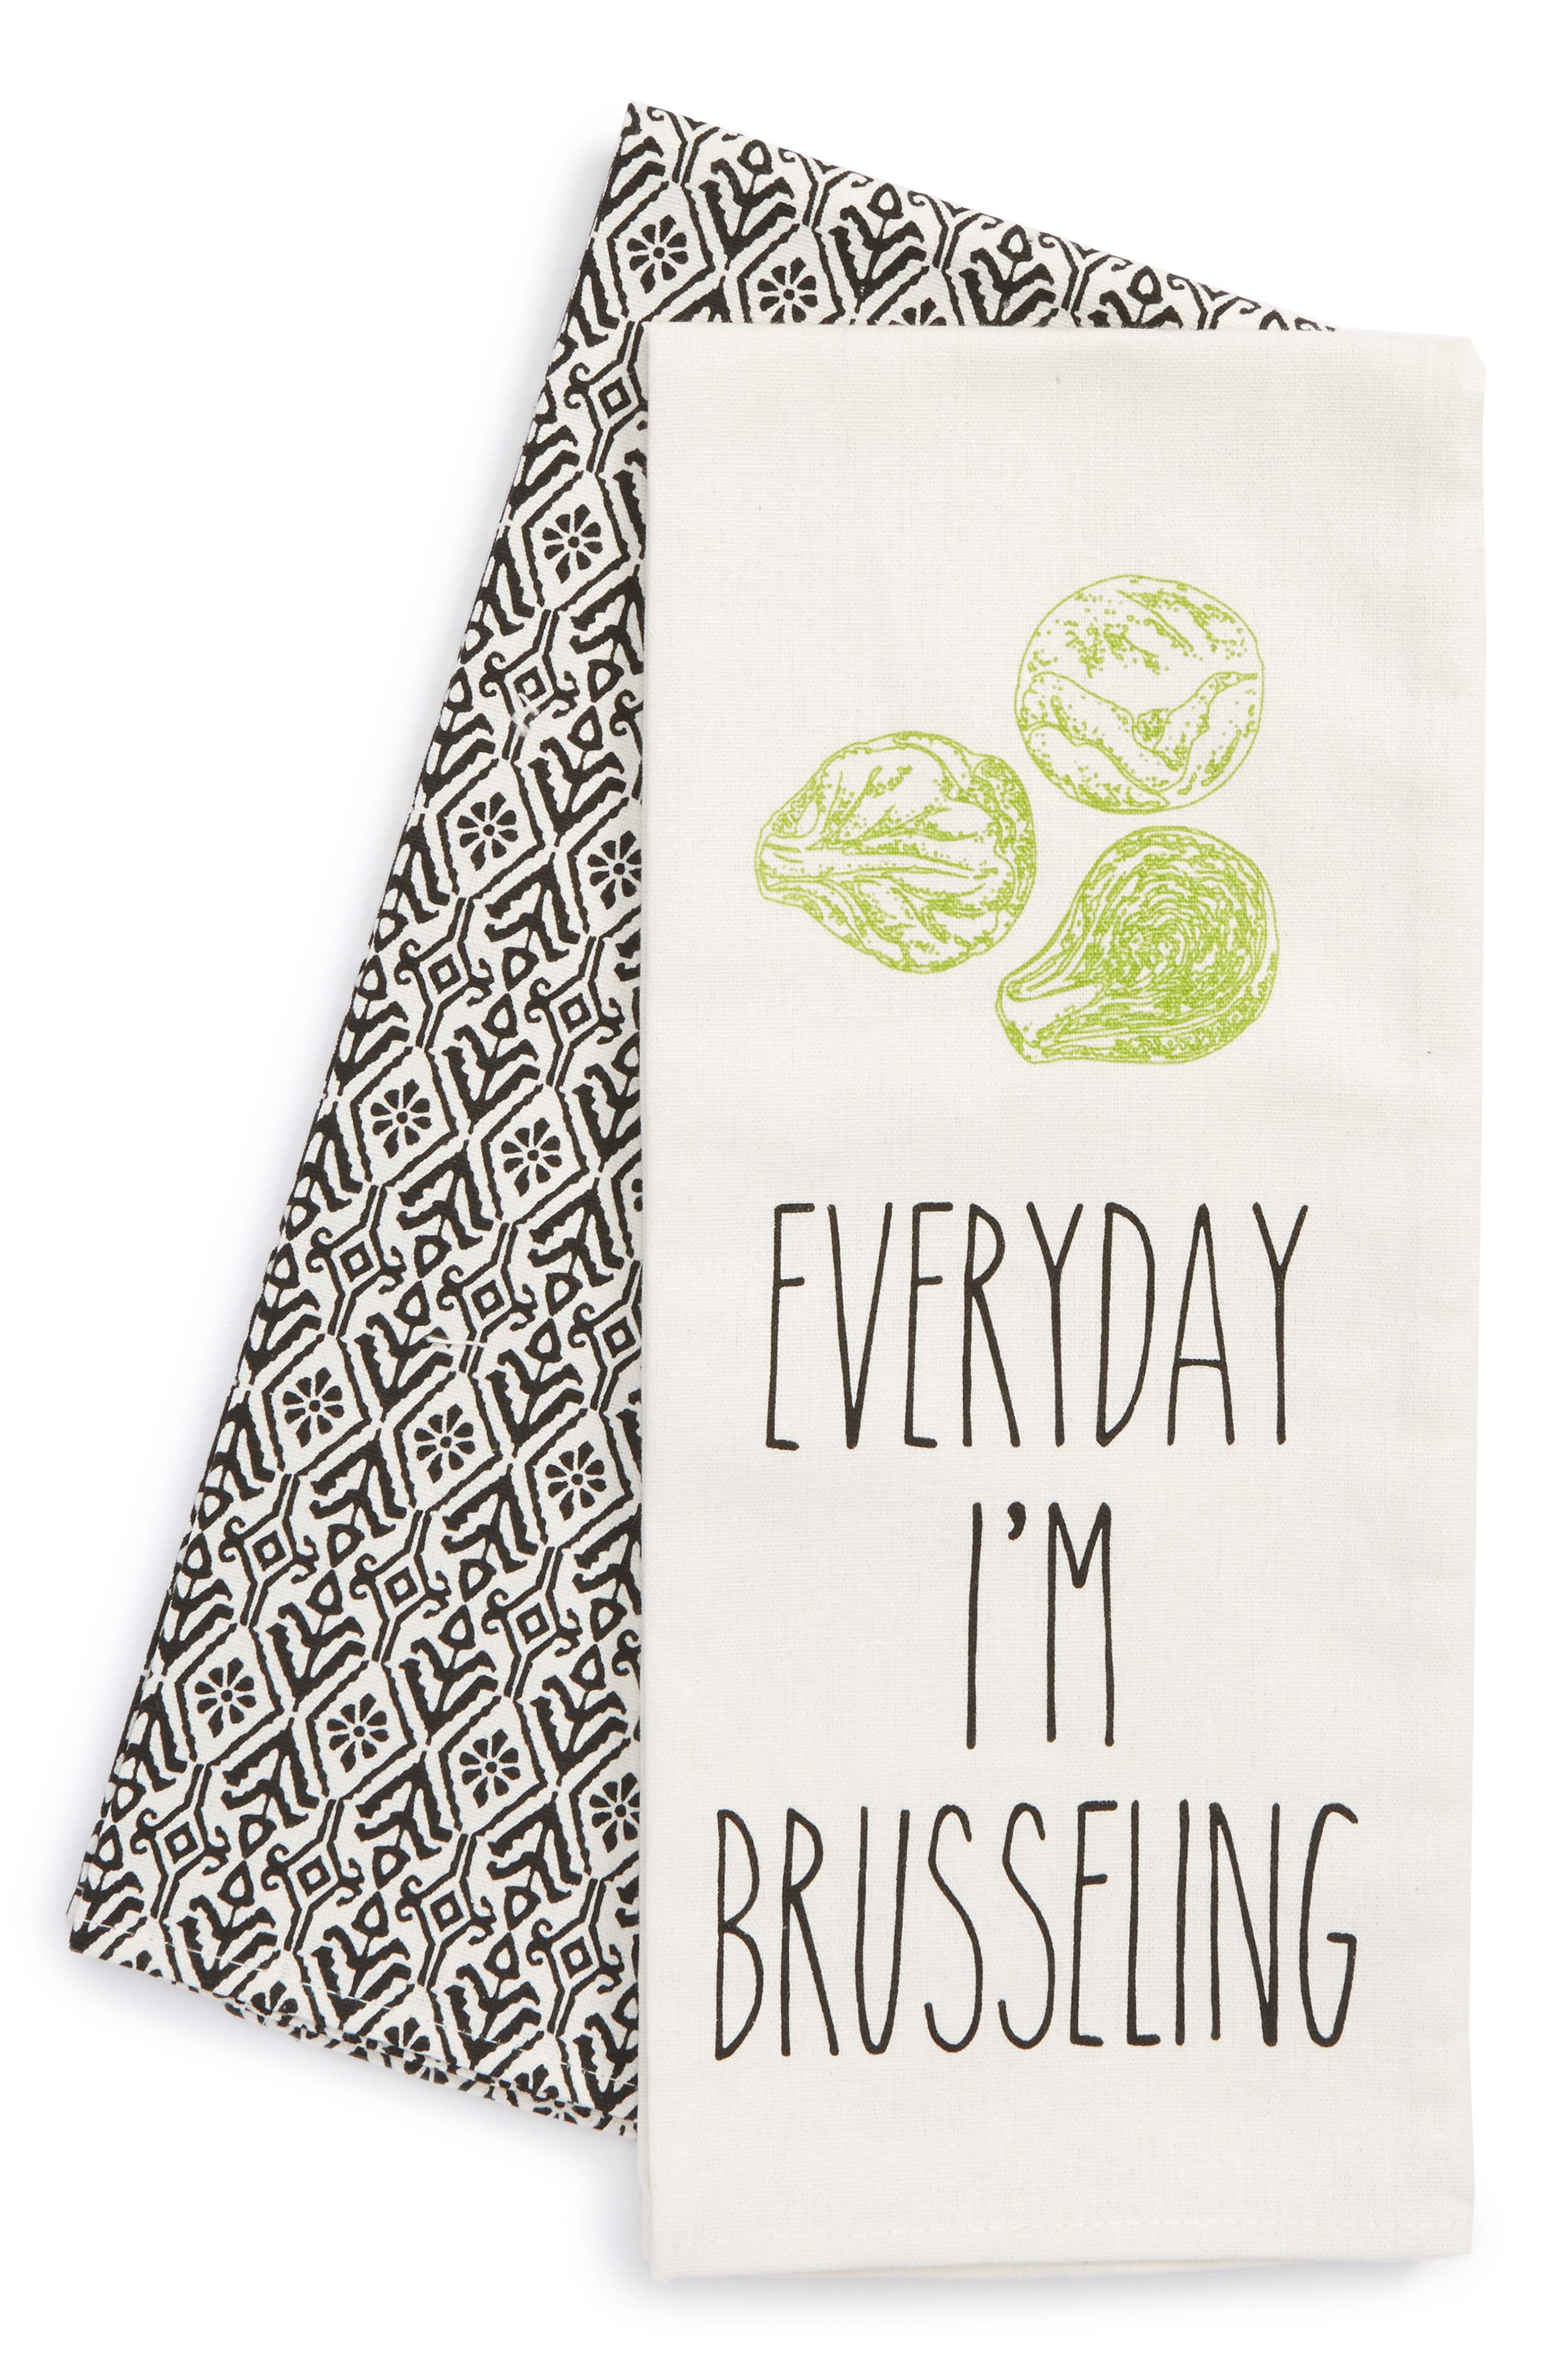 Main Image - Levtex Brusseling Set of 2 Dish Towels